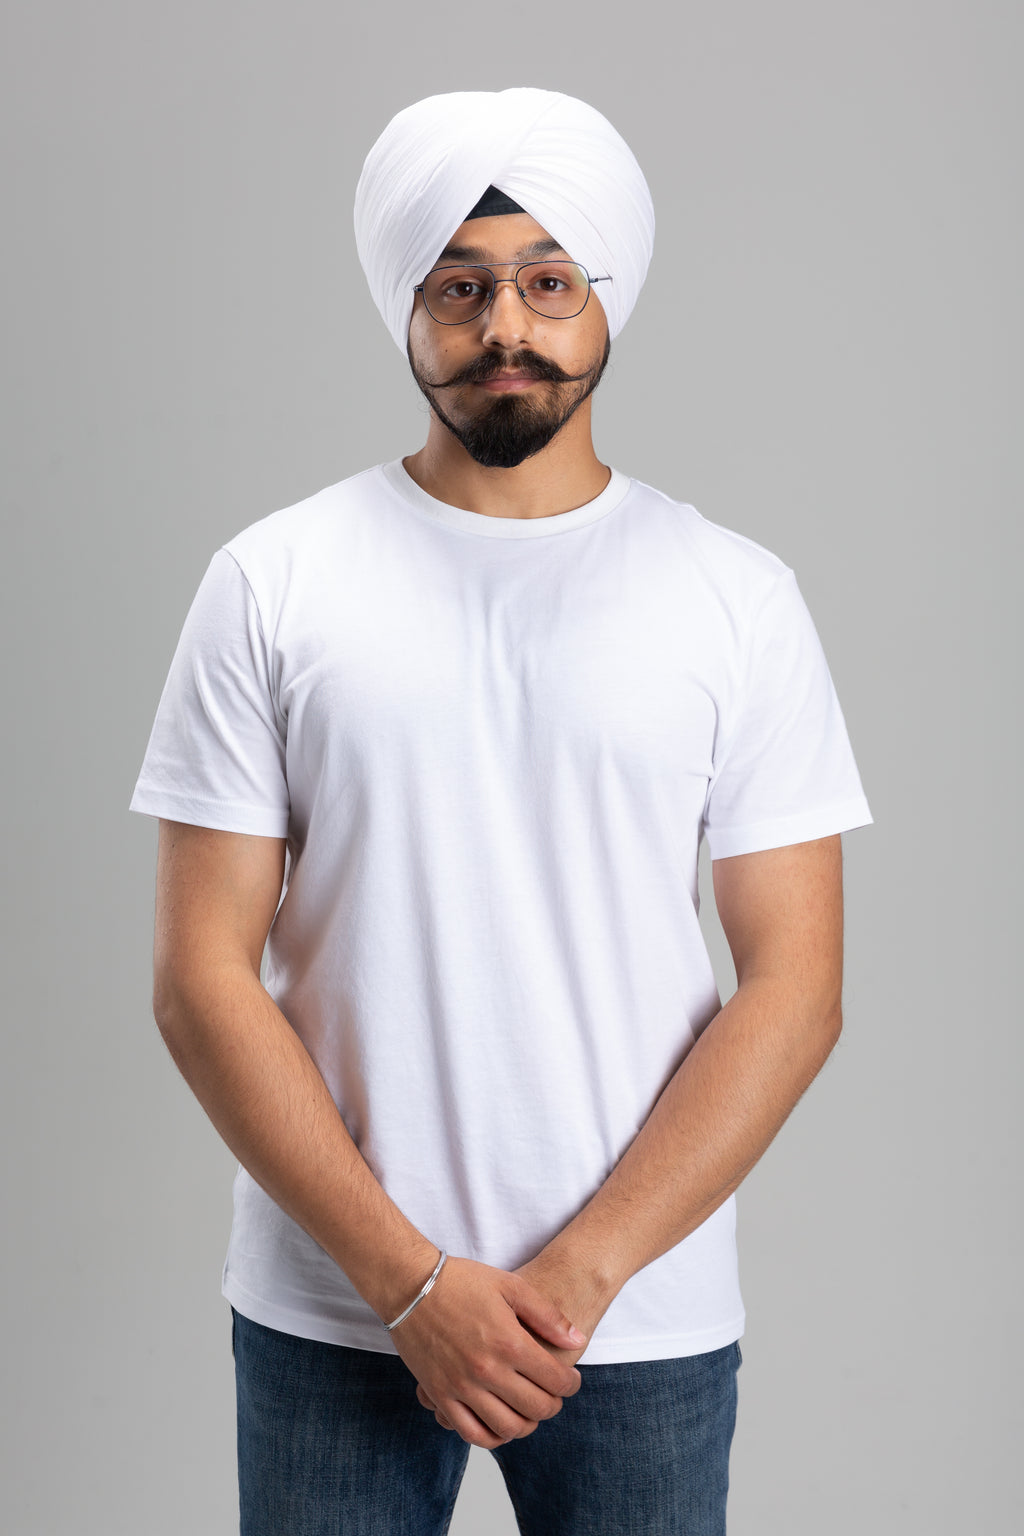 Sikh Man Wearing a White Turban Keski